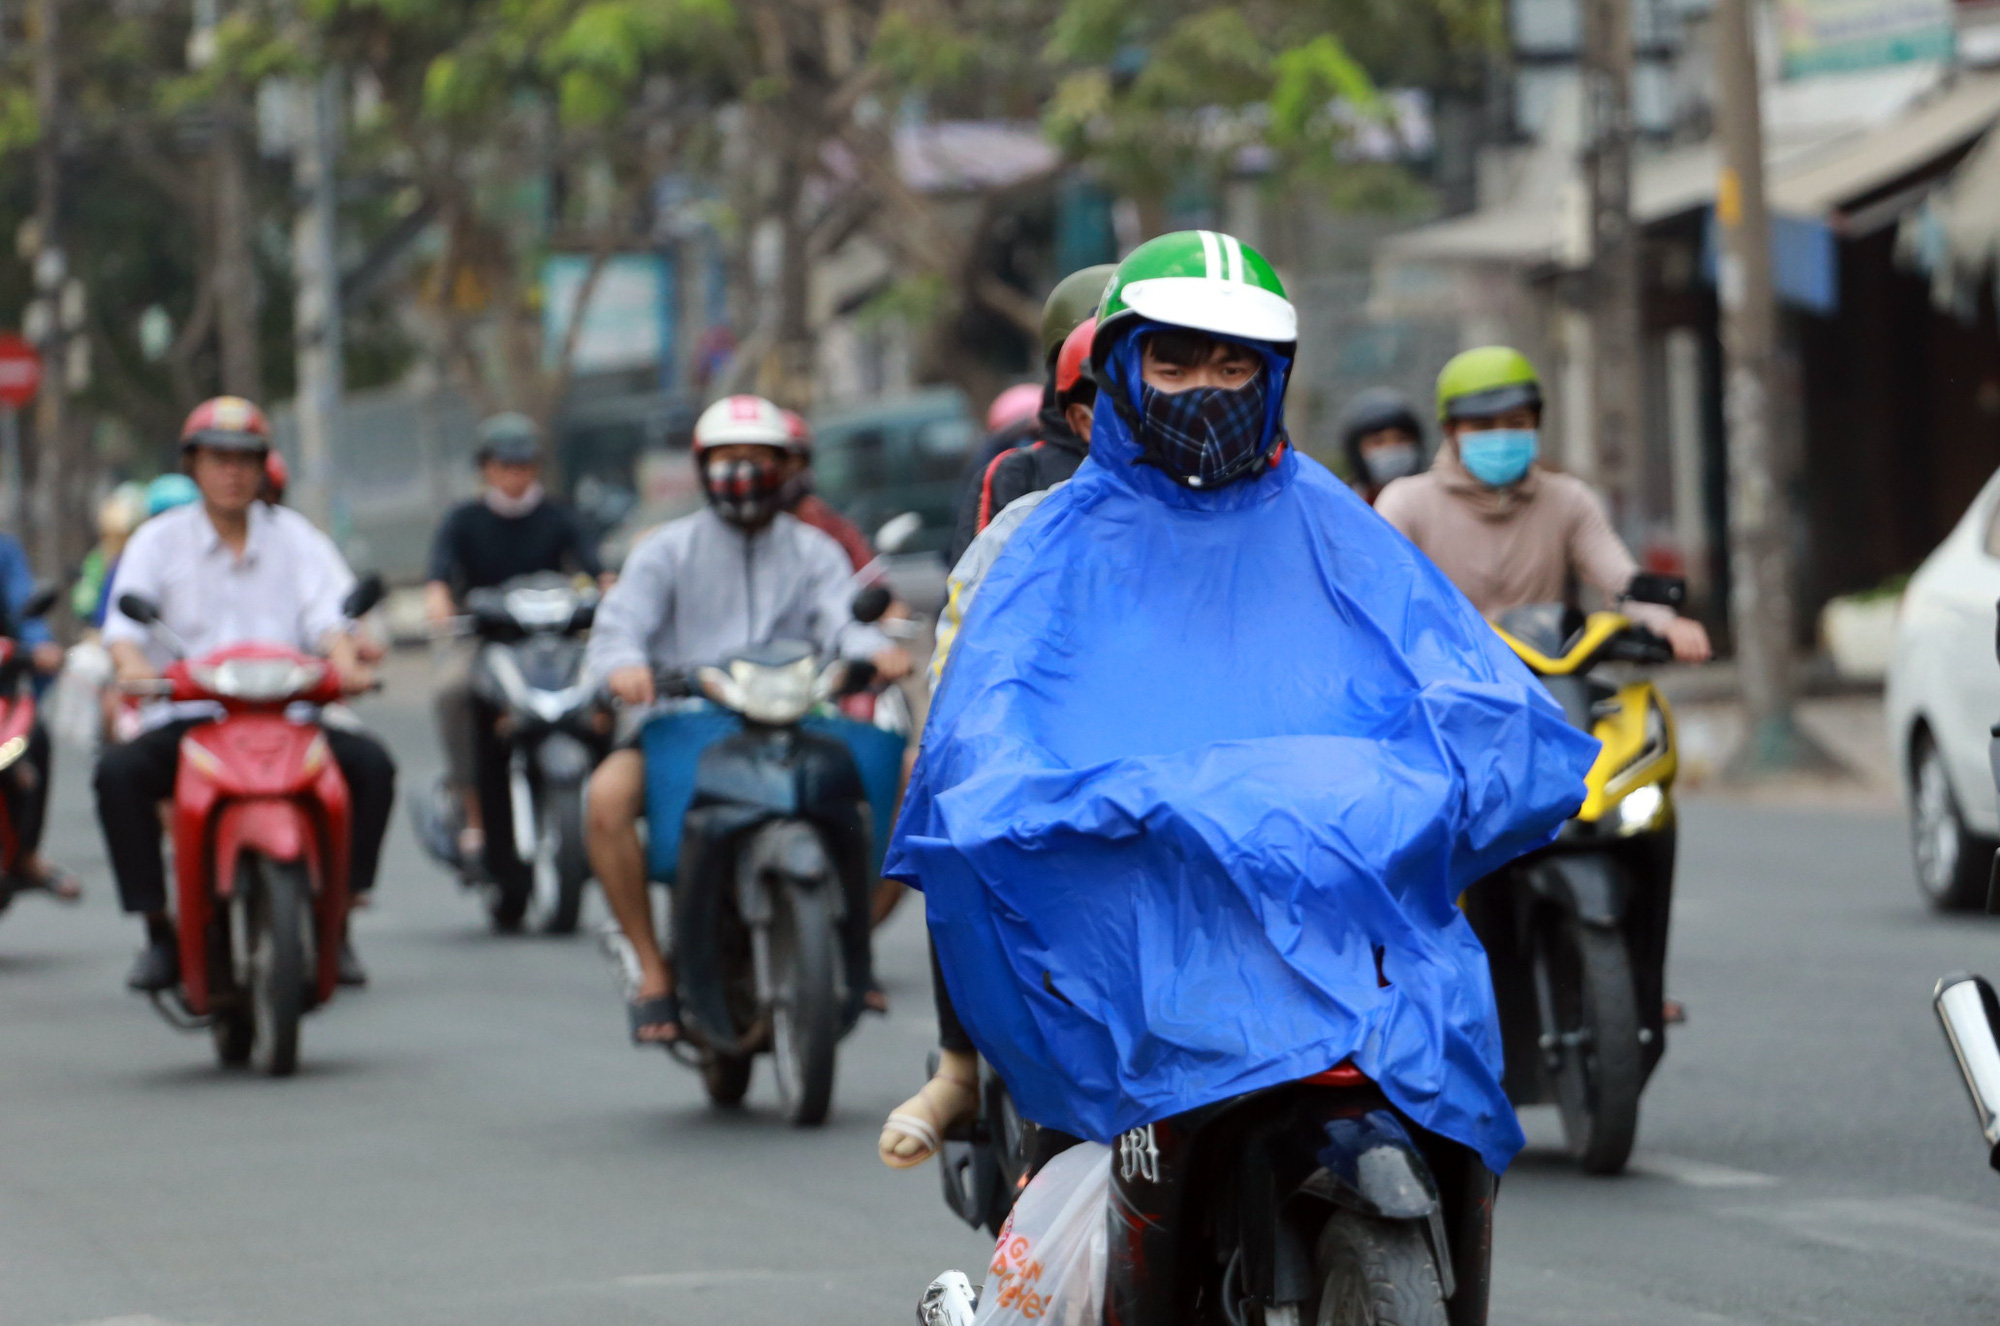 Cold spell to bring low temperature, unseasonal rain to southern Vietnam this week